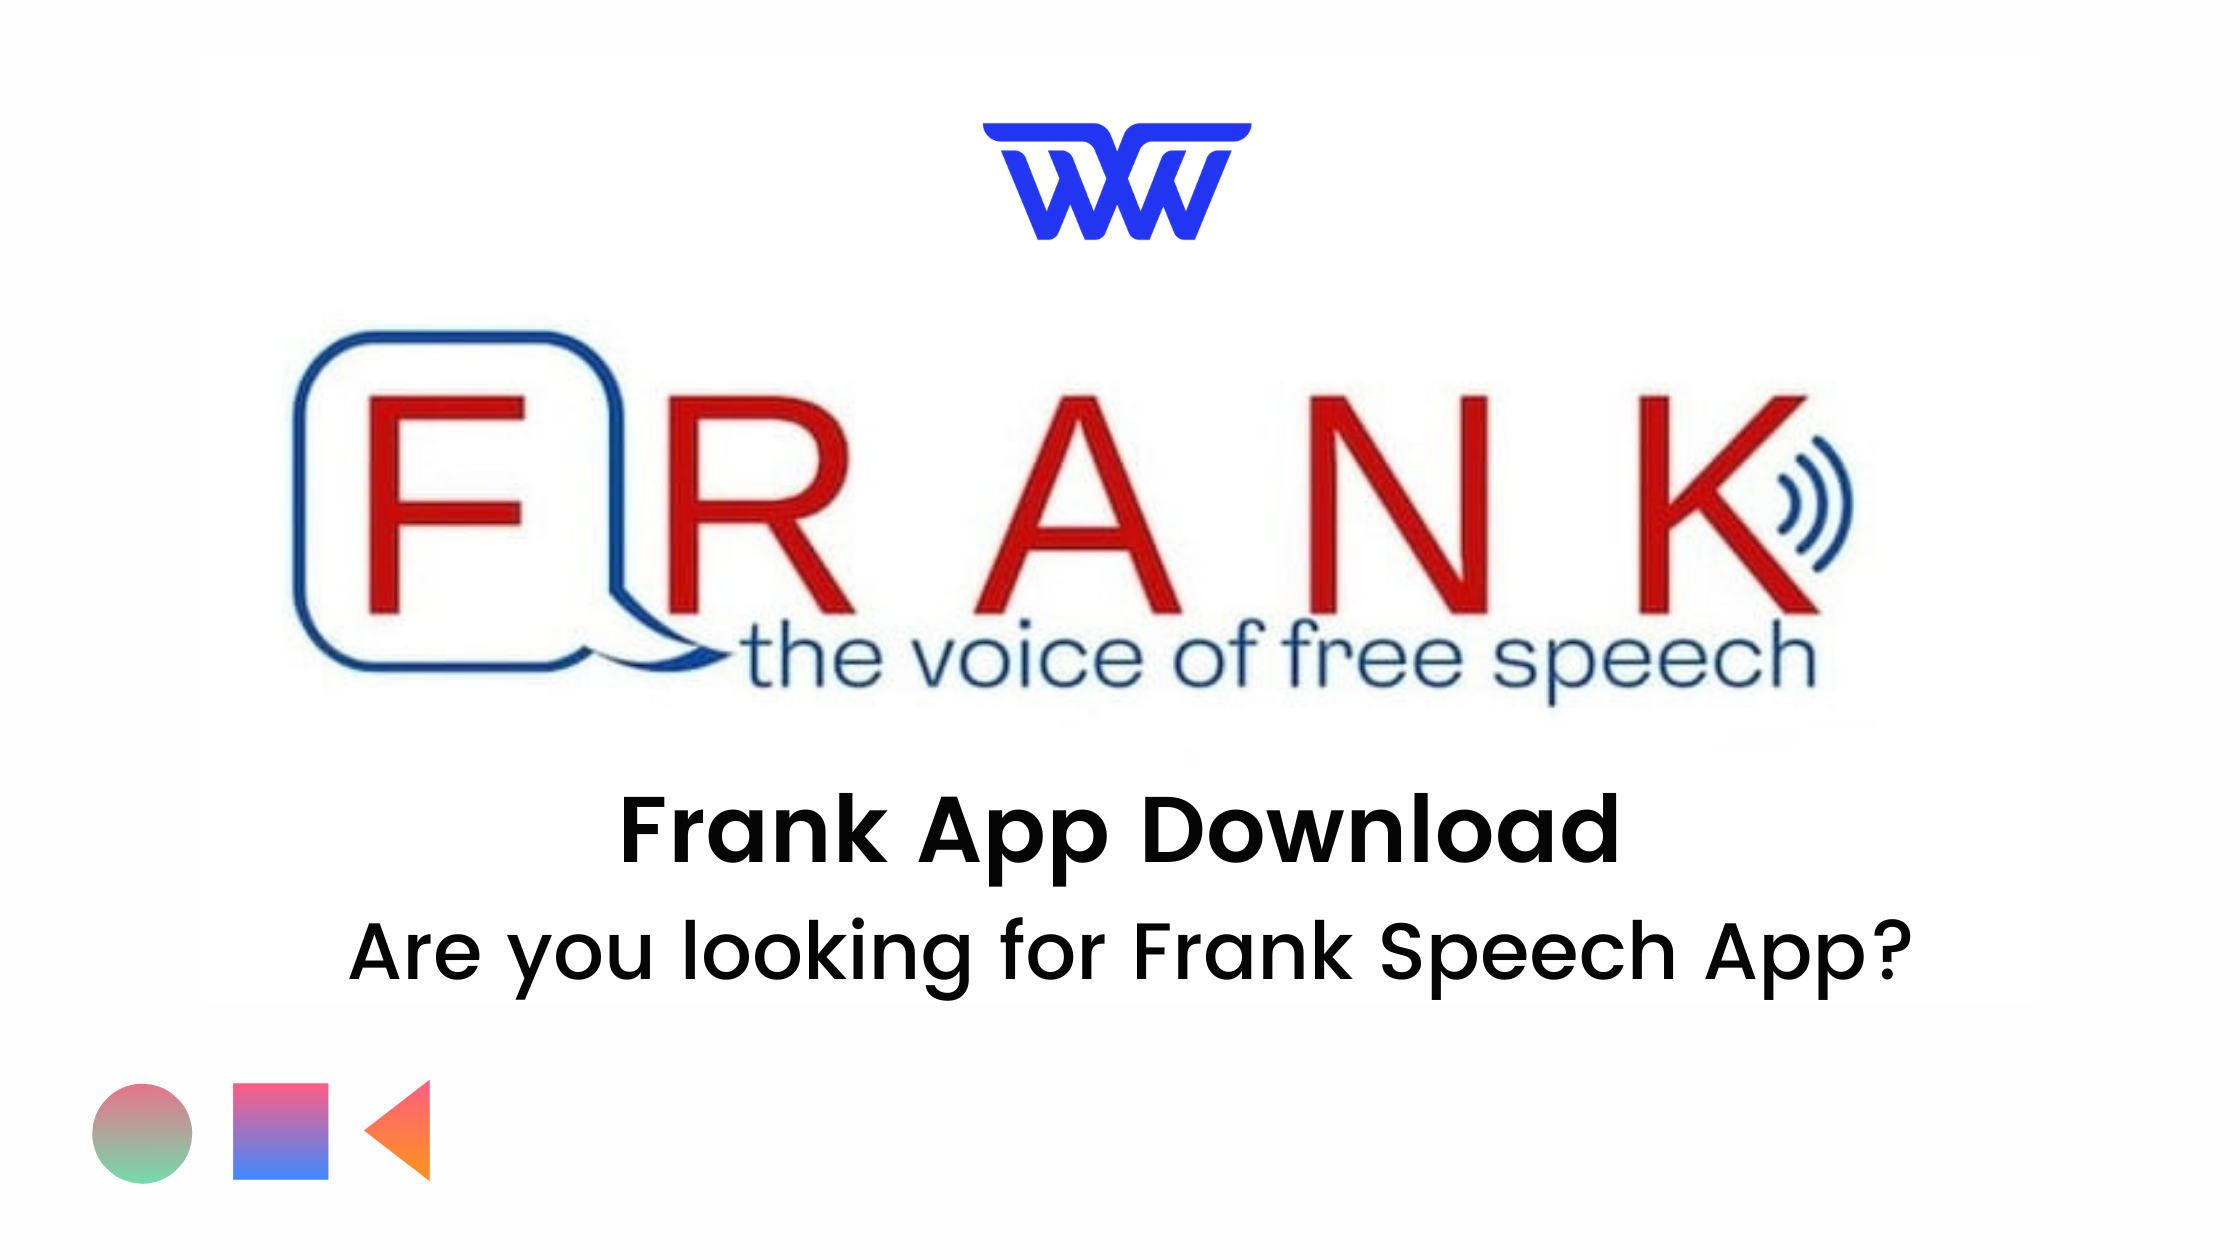 Frank App Download Are you looking for Frank Speech App?